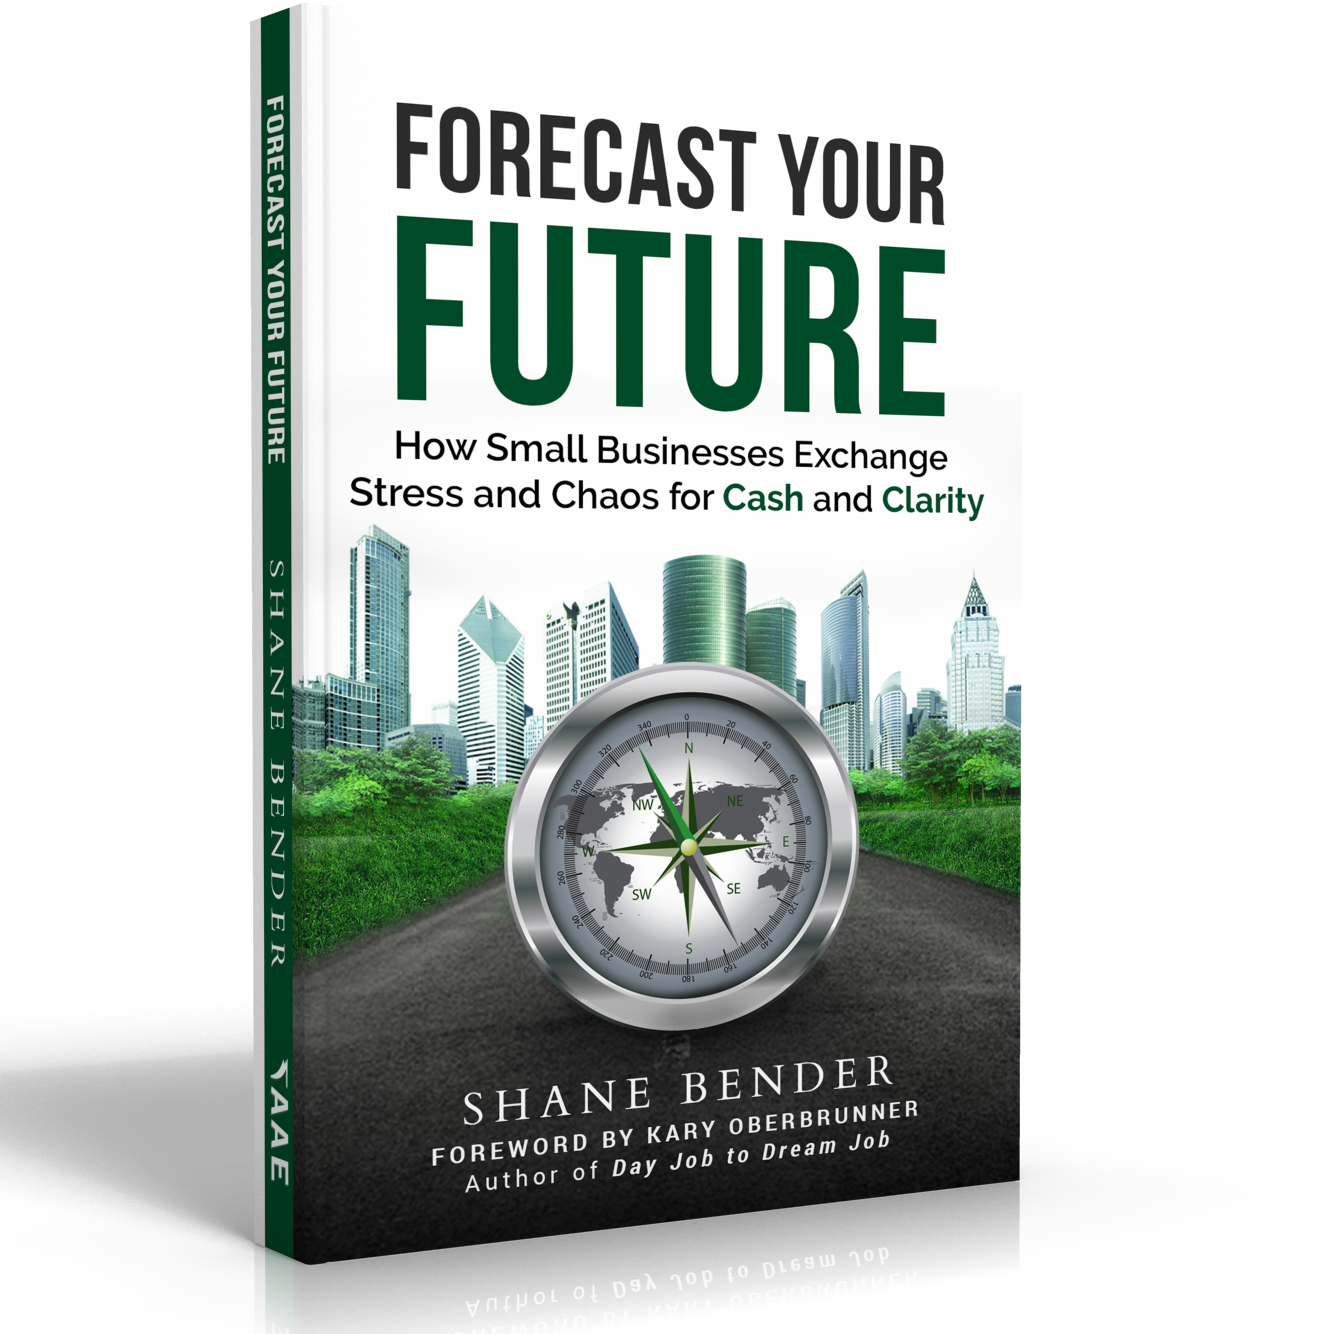 Why Build a Forecast Model?